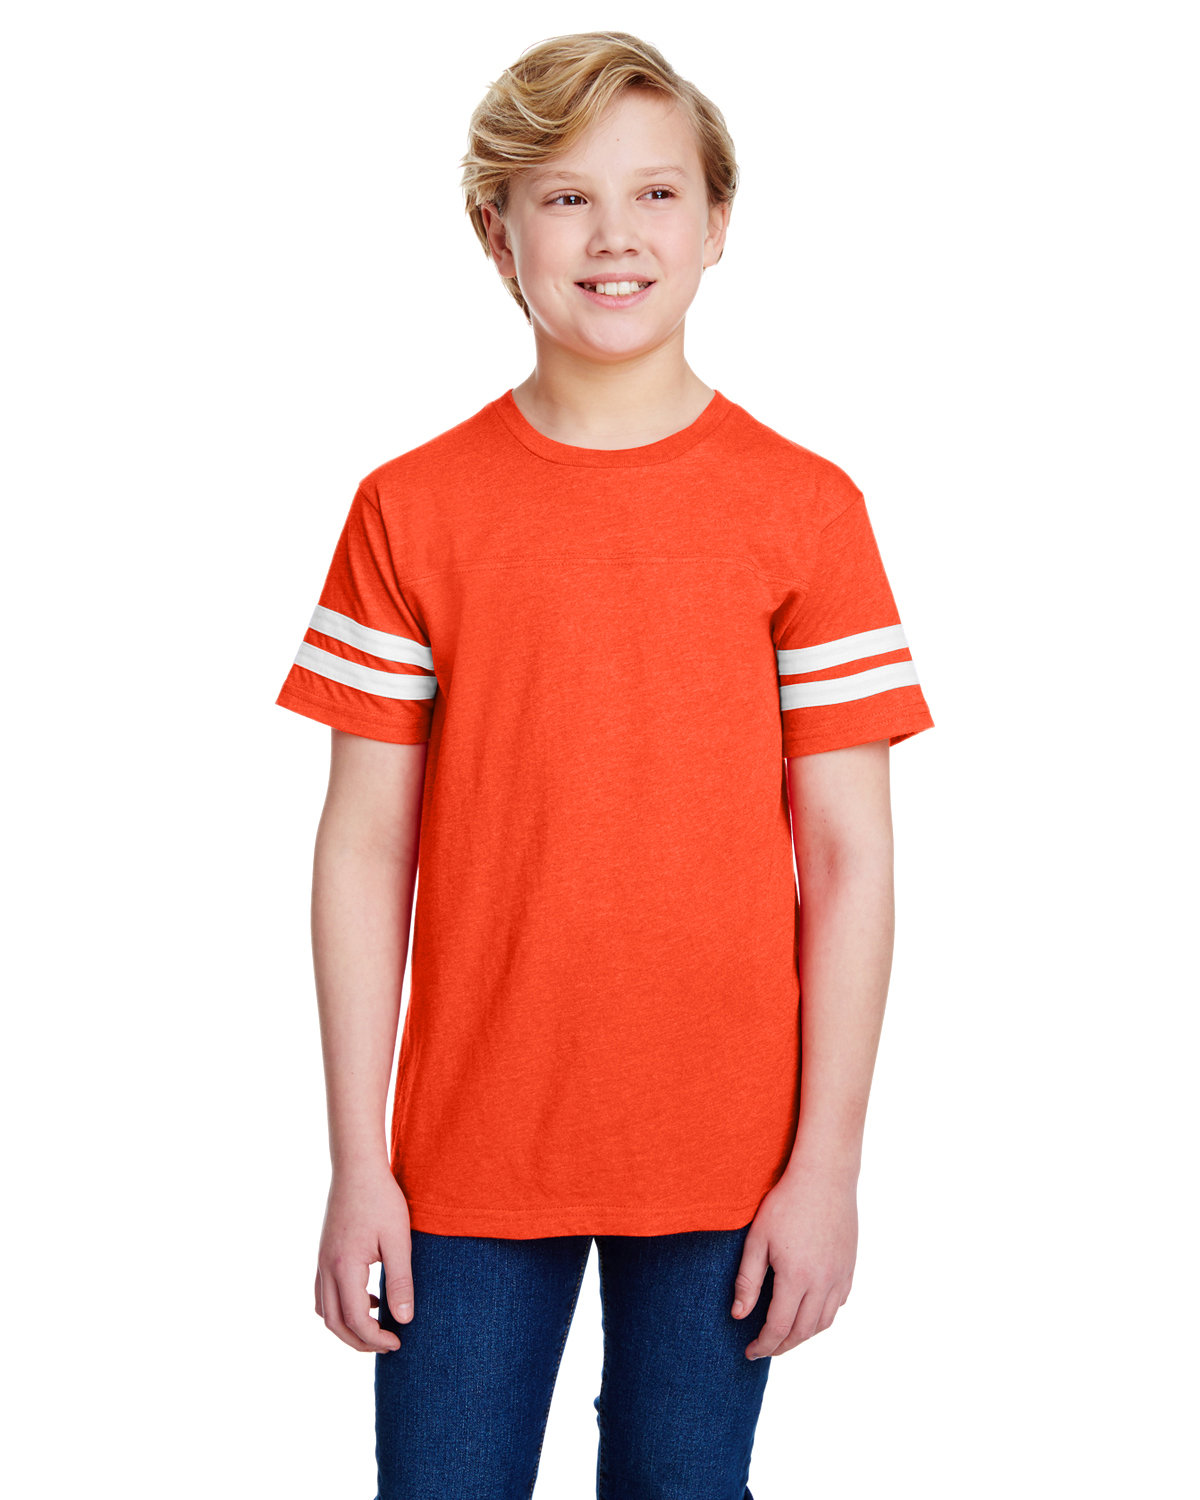 LAT Youth Football Fine Jersey T-Shirt VN ORANGE/ BD WH